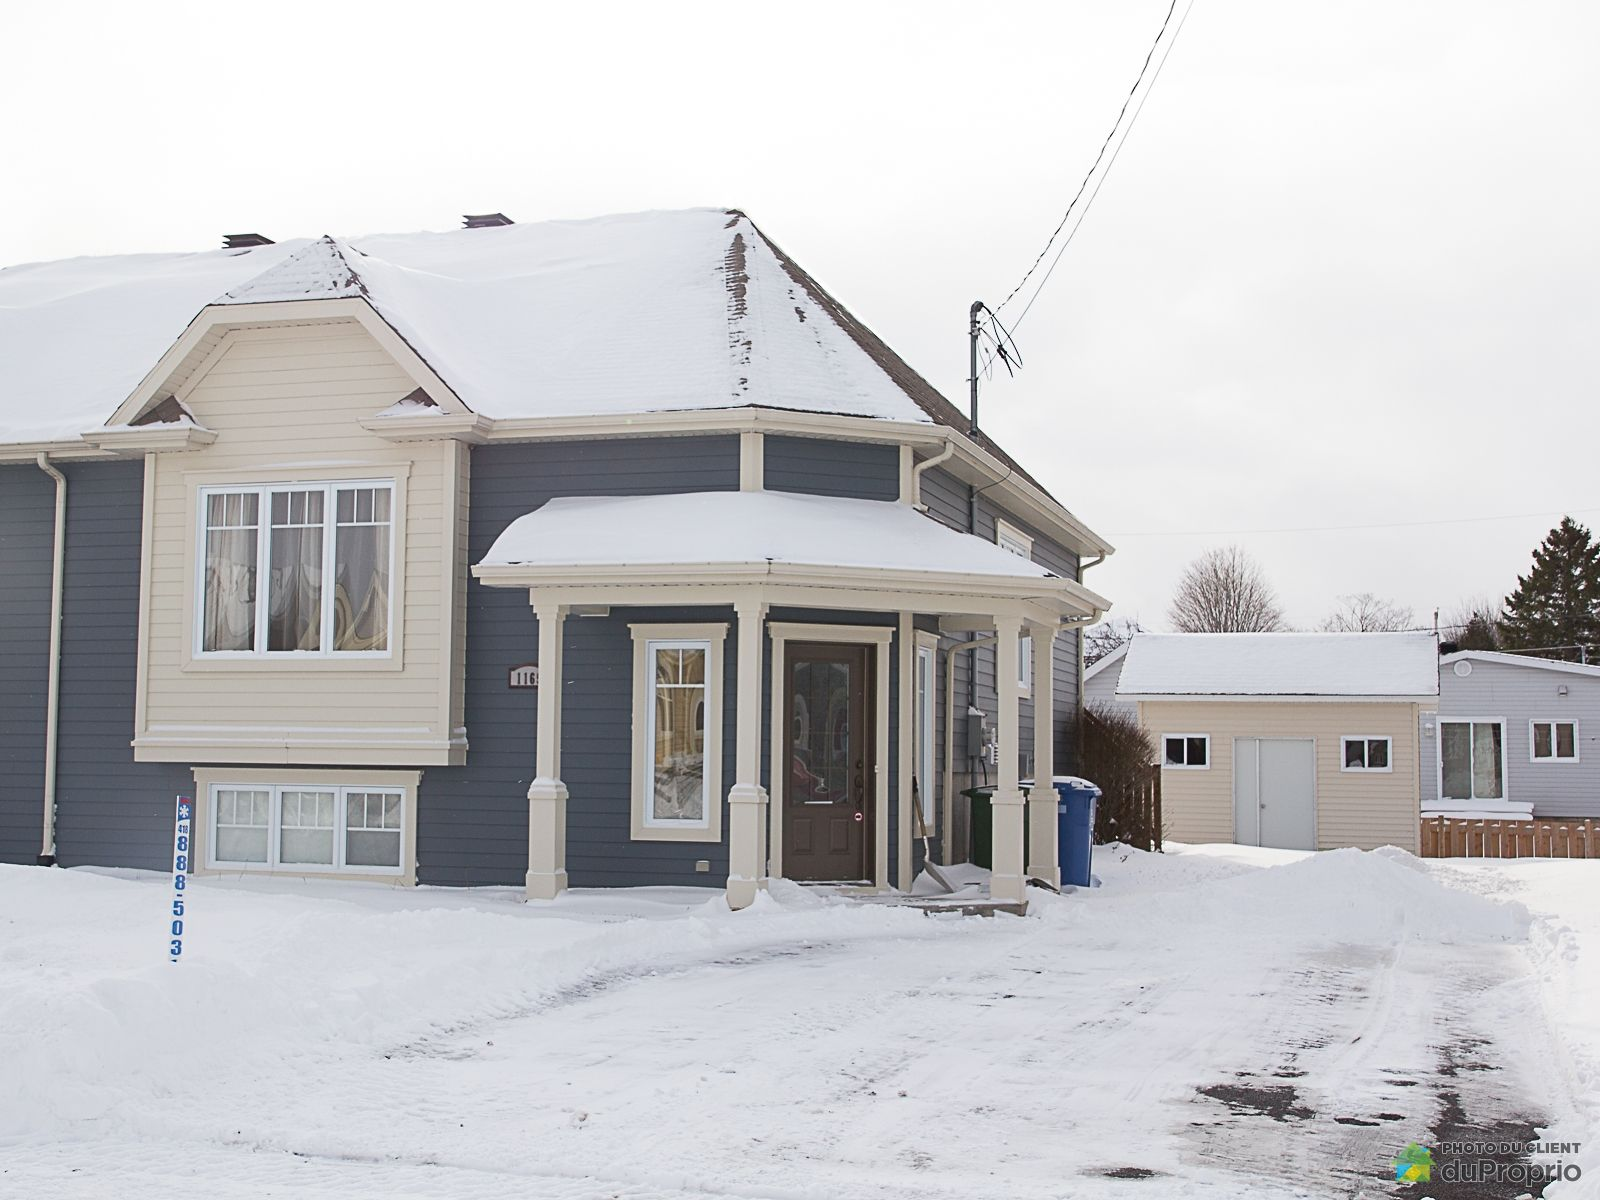 Property sold in St-Agapit